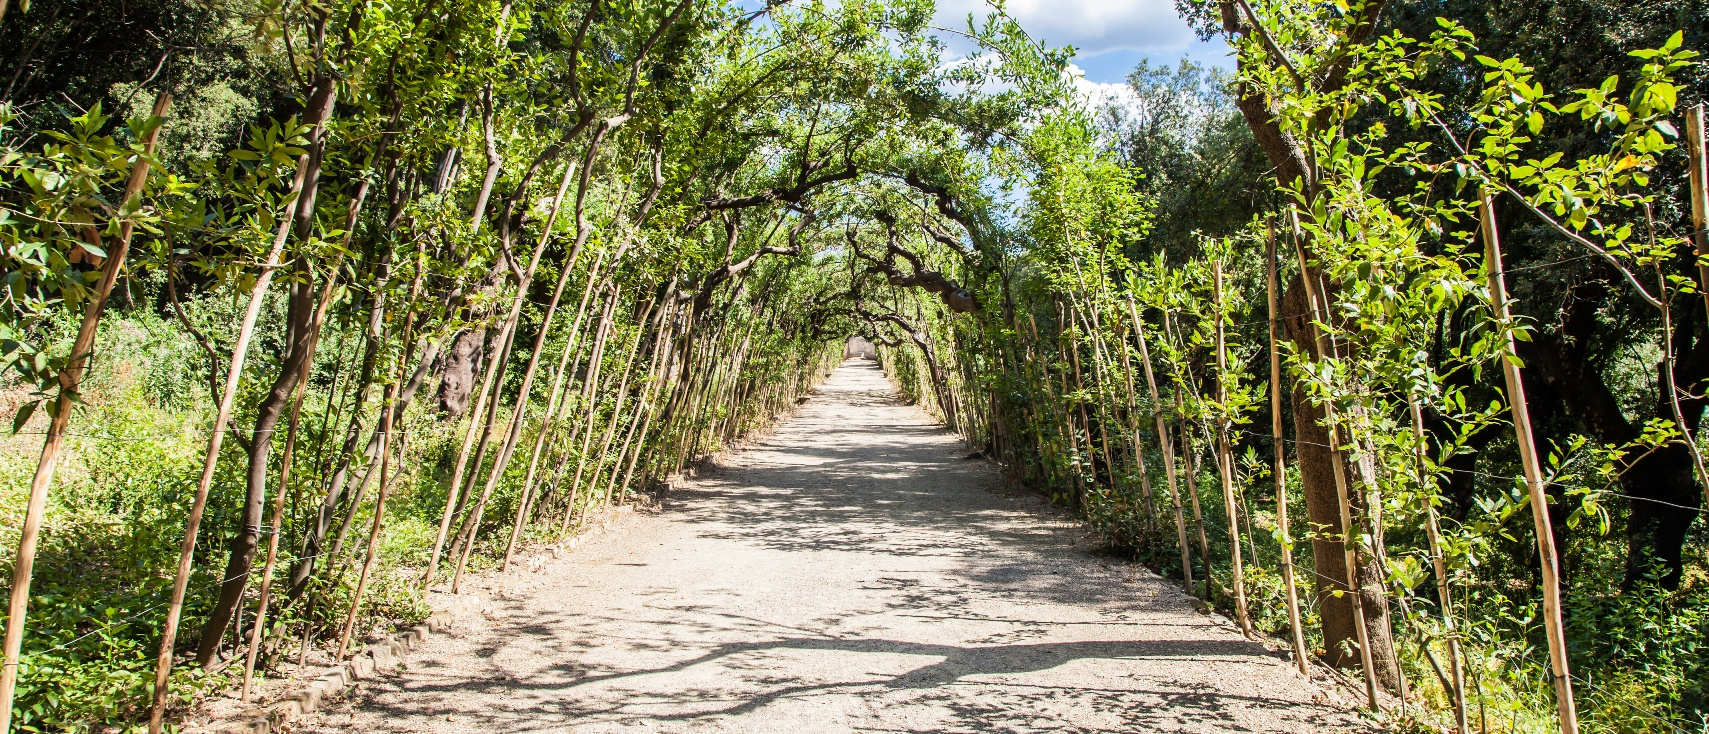 Florence Italy Old Boboli Gardens During A Sunny Day In